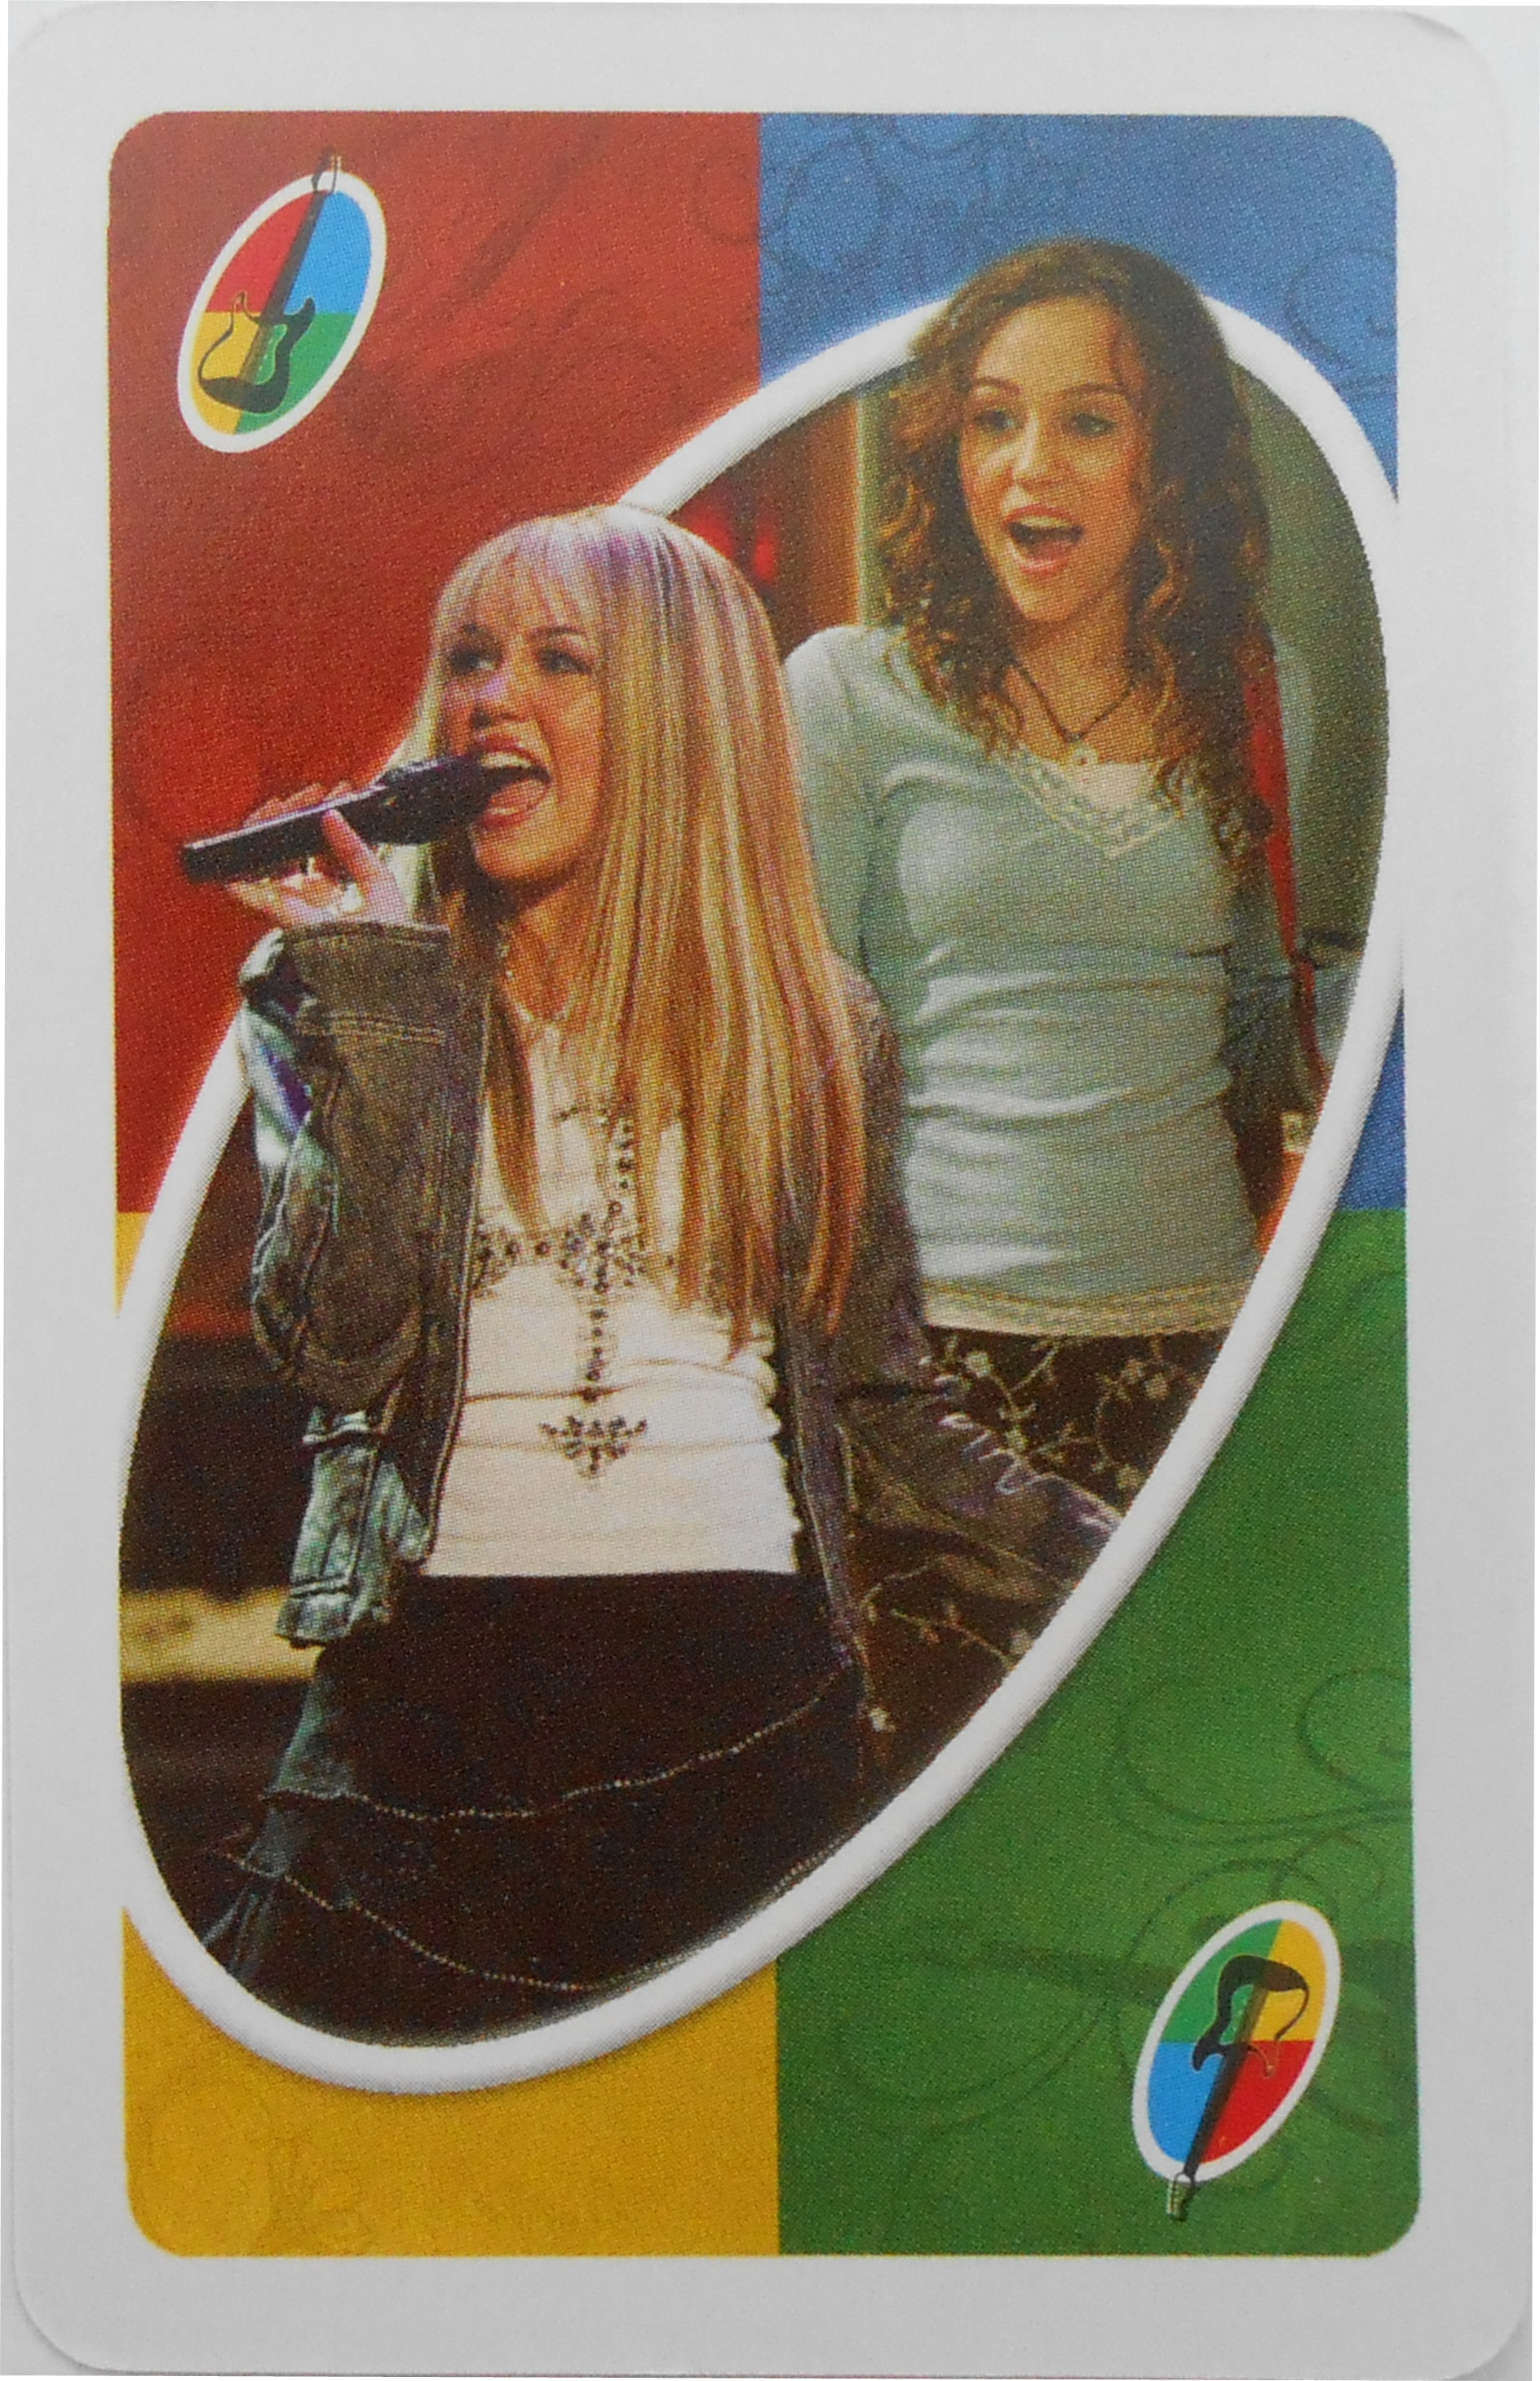 Hannah Montana Uno (Best of Both Worlds Card)